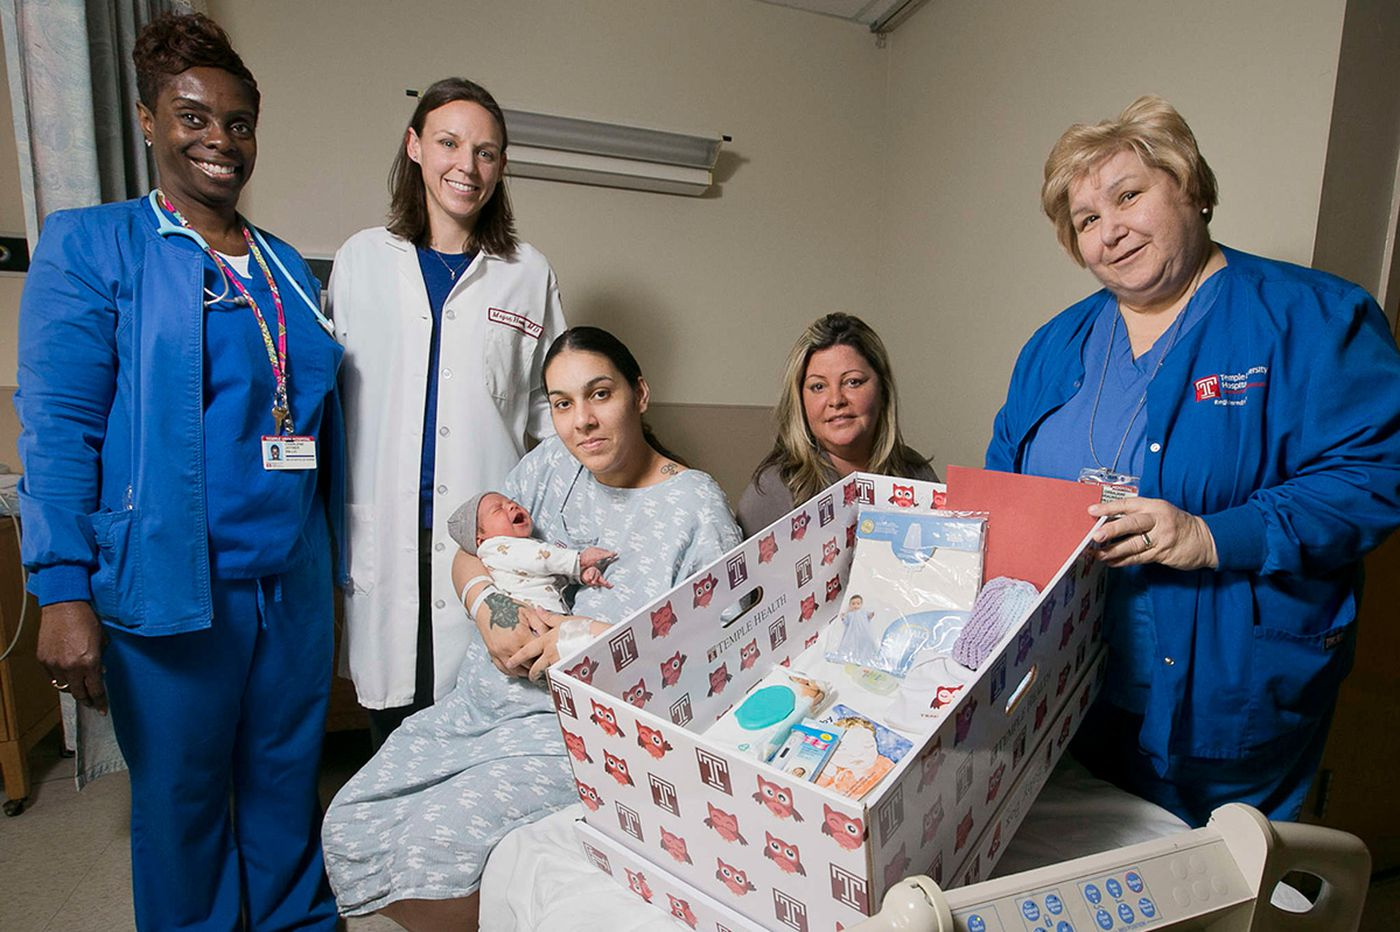 Temple study: Baby boxes help improve infant sleep safety